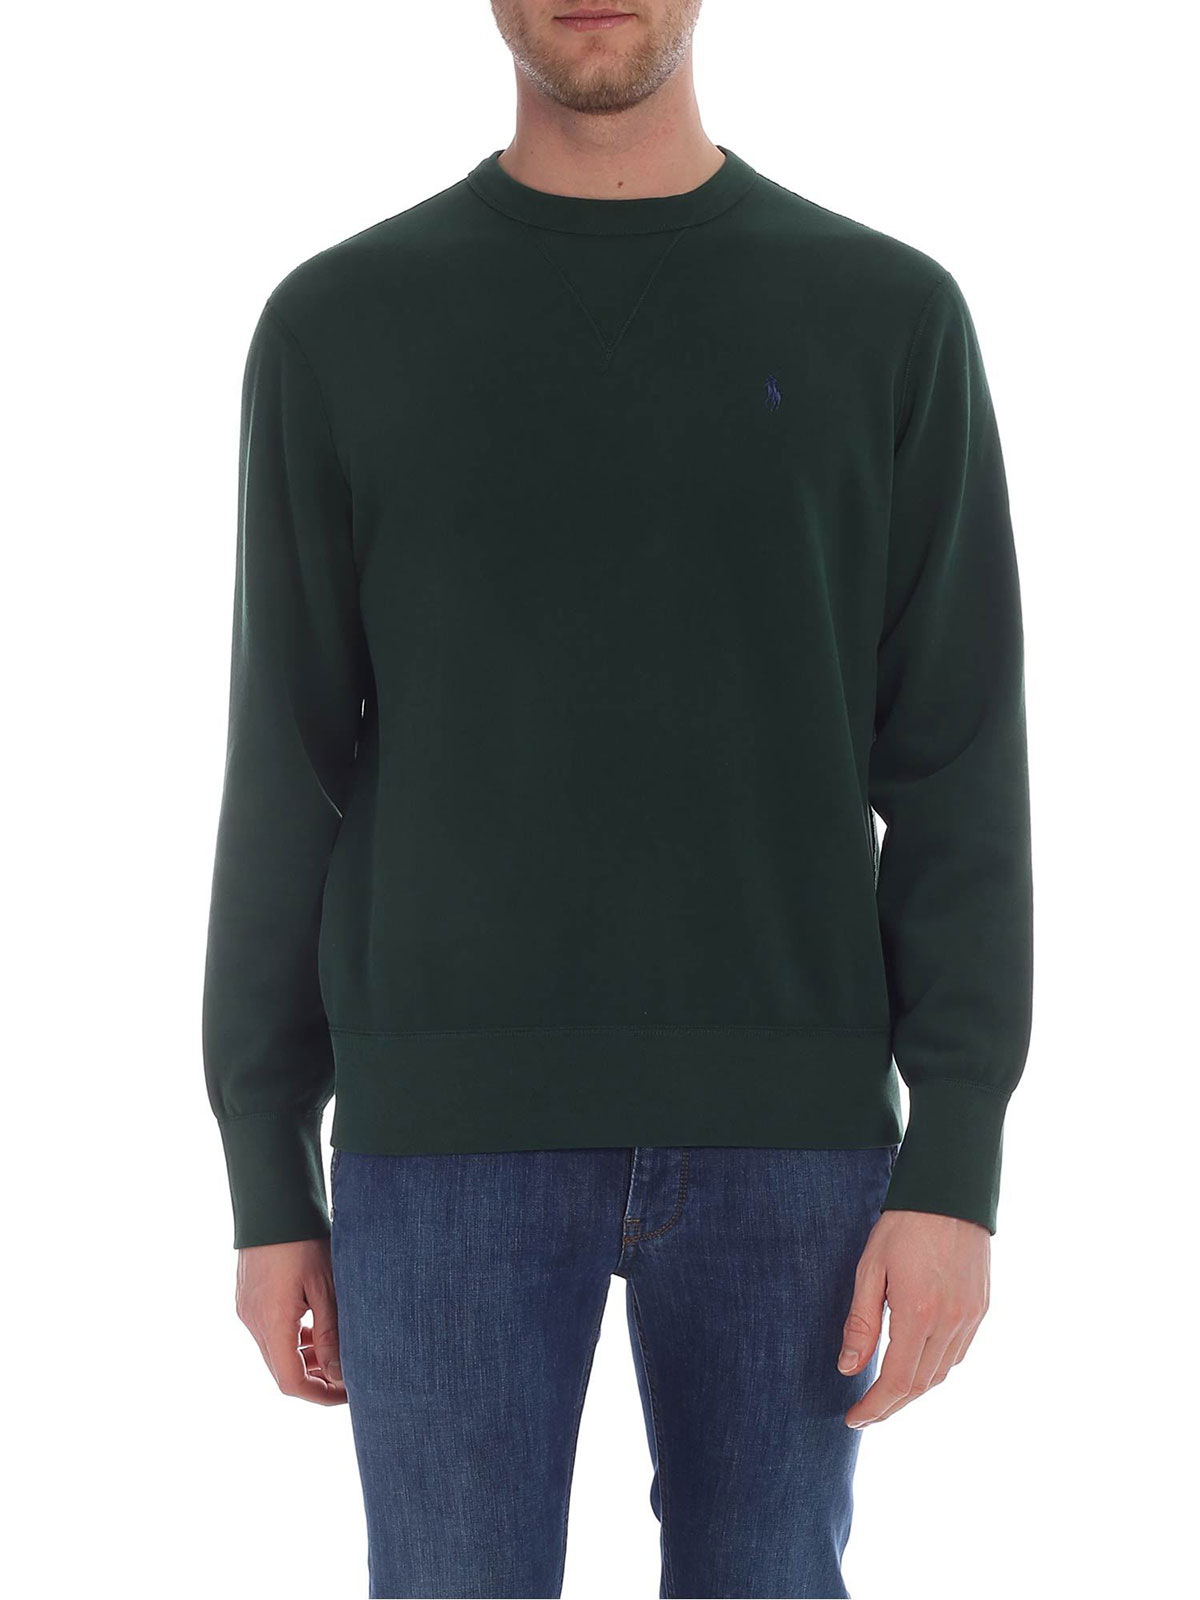 Immagine di POLO RALPH LAUREN | Felpe LONG SLEEVE KNIT